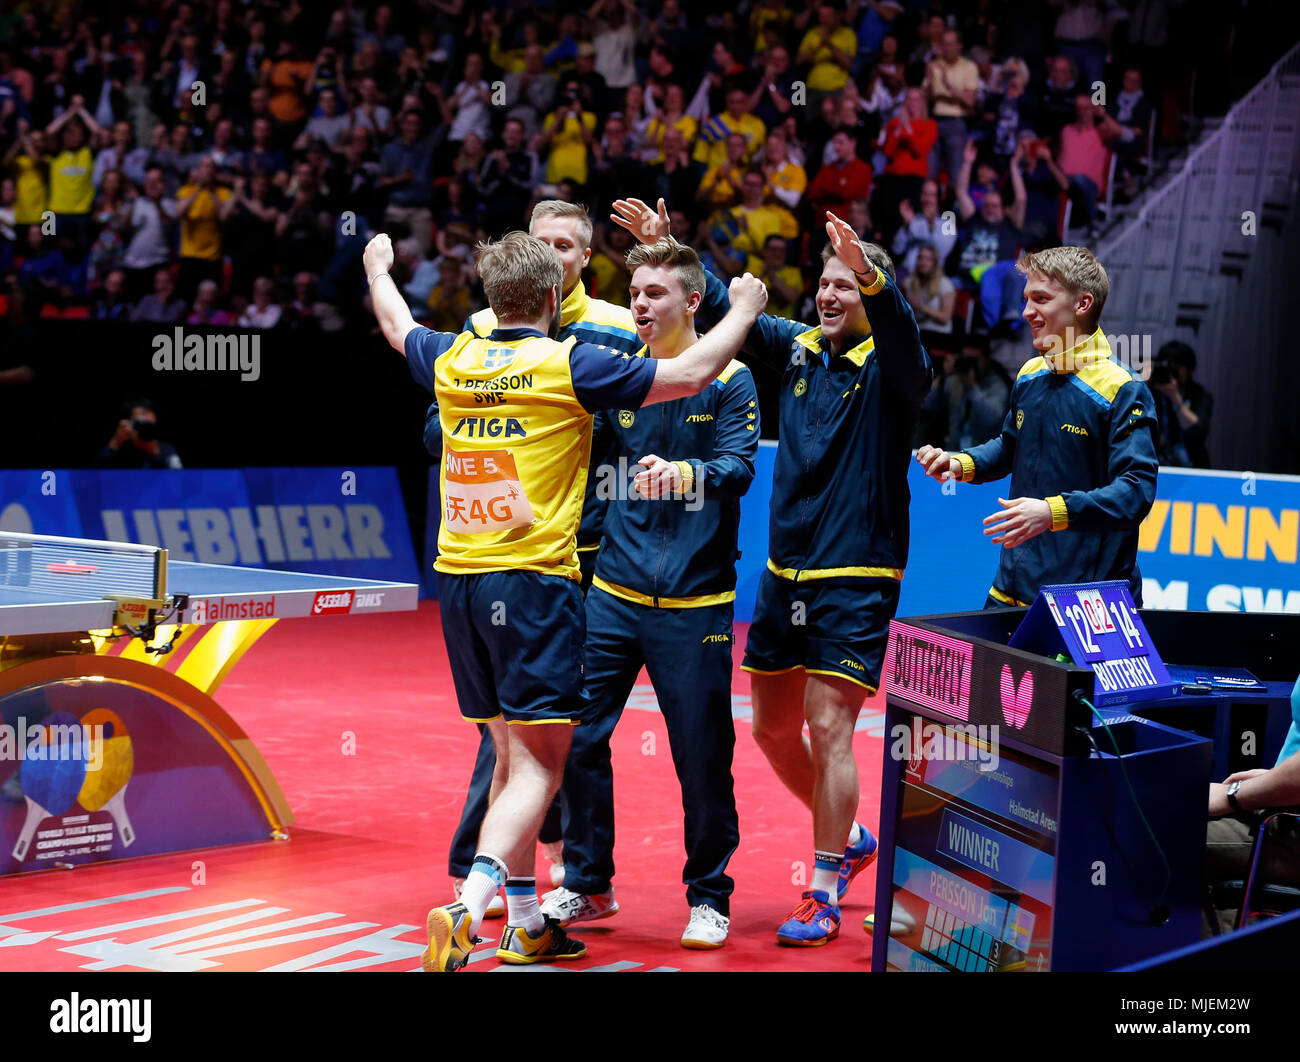 Halmstad, Sweden. 4th May, 2018. Swedish players celebrate after winning the Men's group quarterfinal match against England at the 2018 World Team Table Tennis Championships in Halmstad, Sweden, May 4, 2018. Credit: Ye Pingfan/Xinhua/Alamy Live News - Stock Image